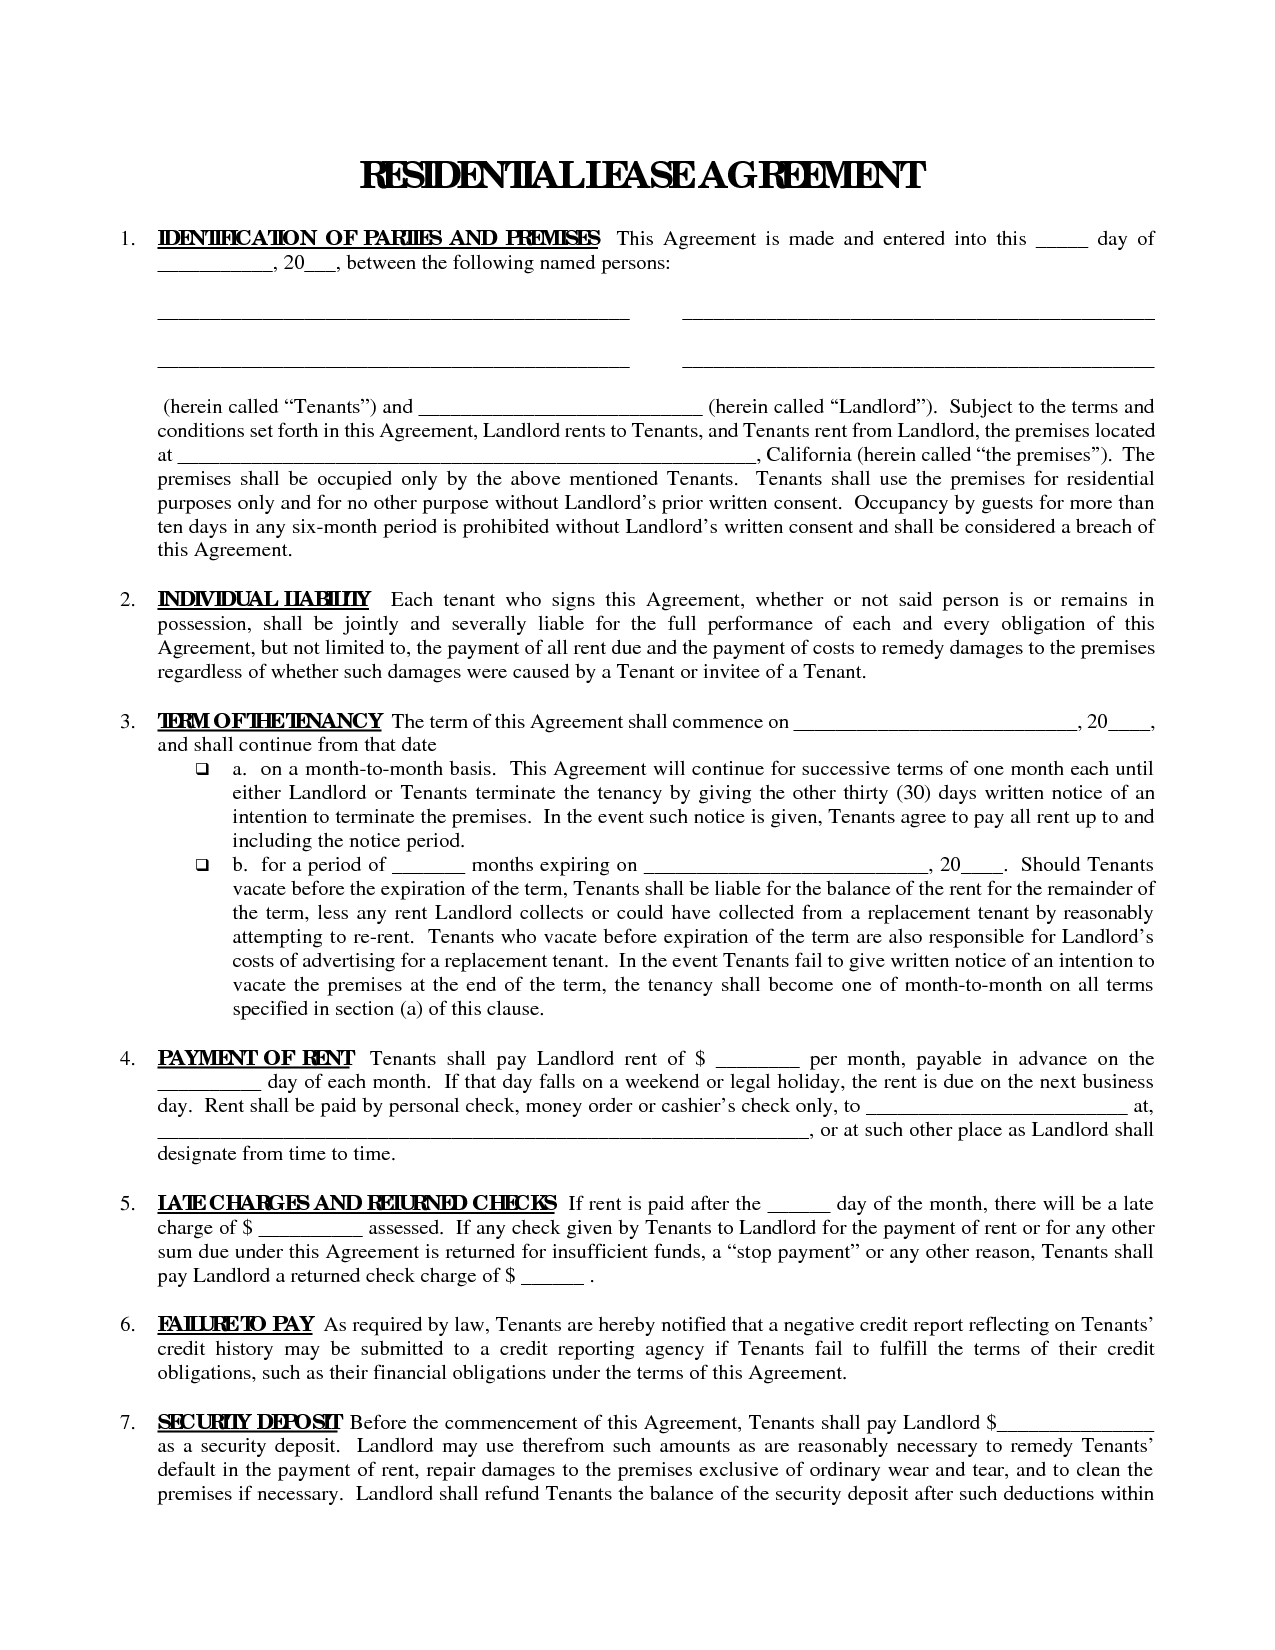 Charming Printable Residential Free House Lease Agreement | Residential Lease  Agreement: Real Estate Legal Form  Free Blank Lease Agreement Forms